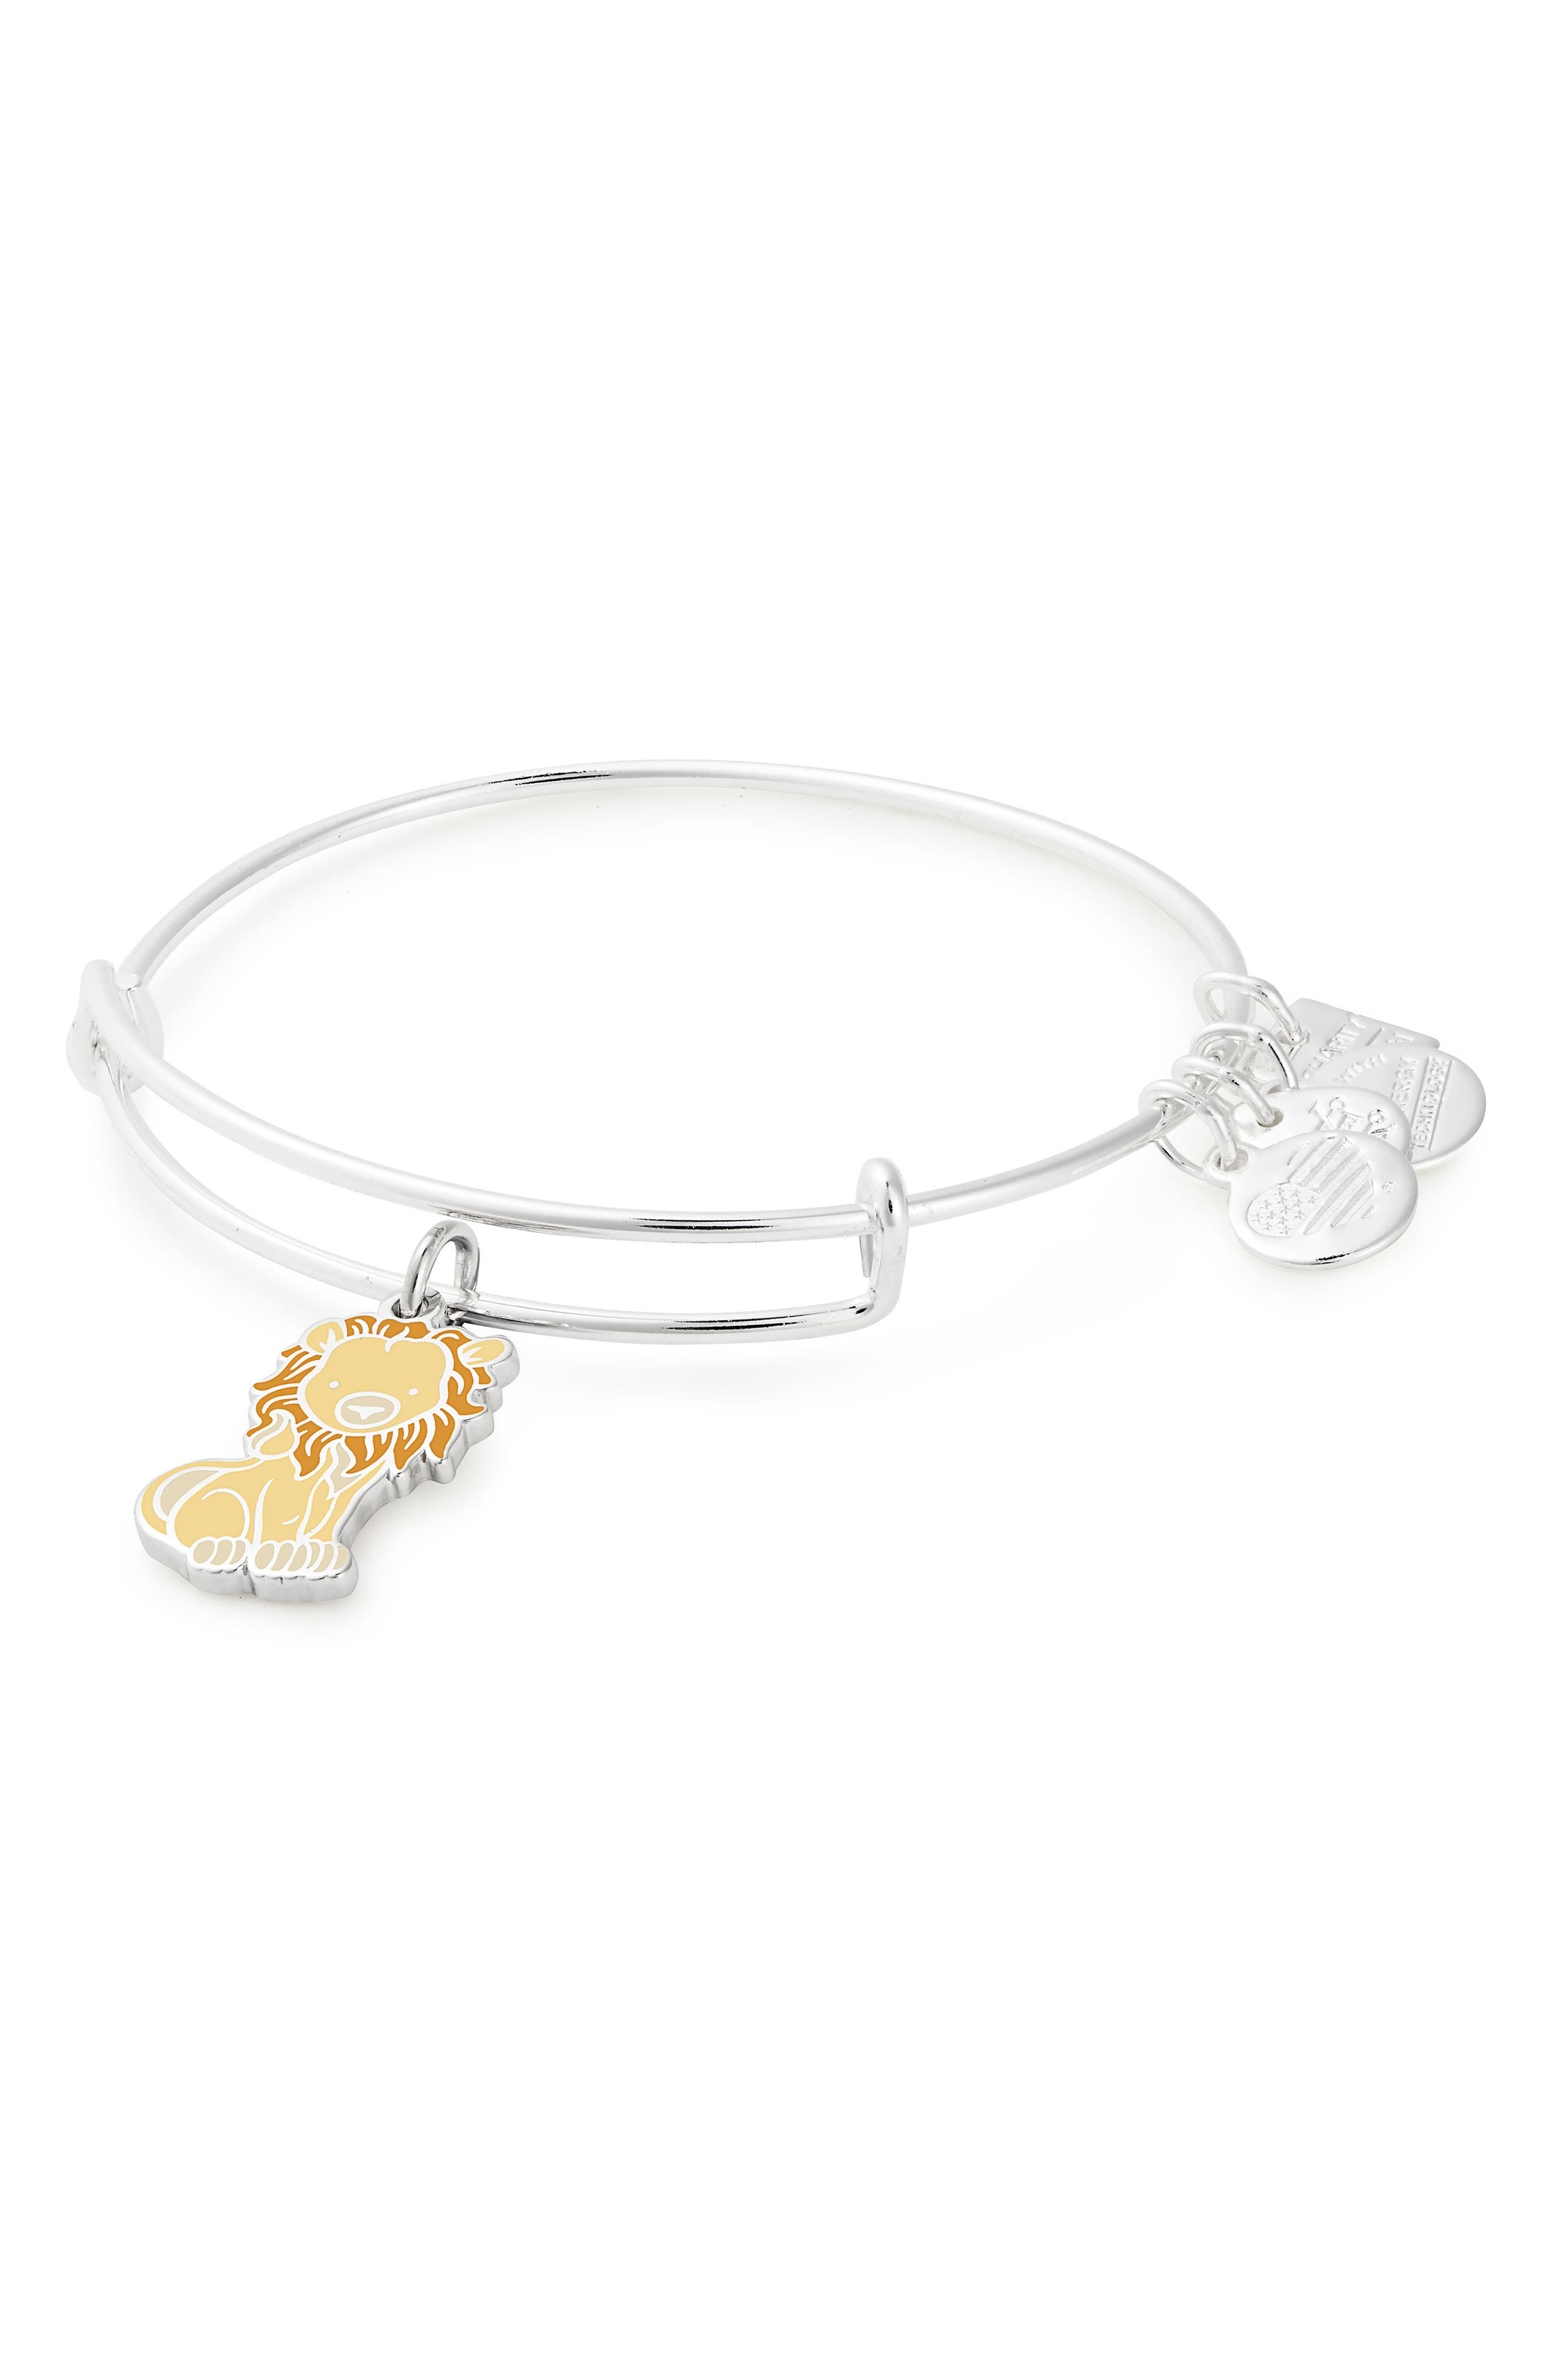 ALEX AND ANI,                             Charity by Design - Lion Adjustable Wire Bangle,                             Main thumbnail 1, color,                             SILVER